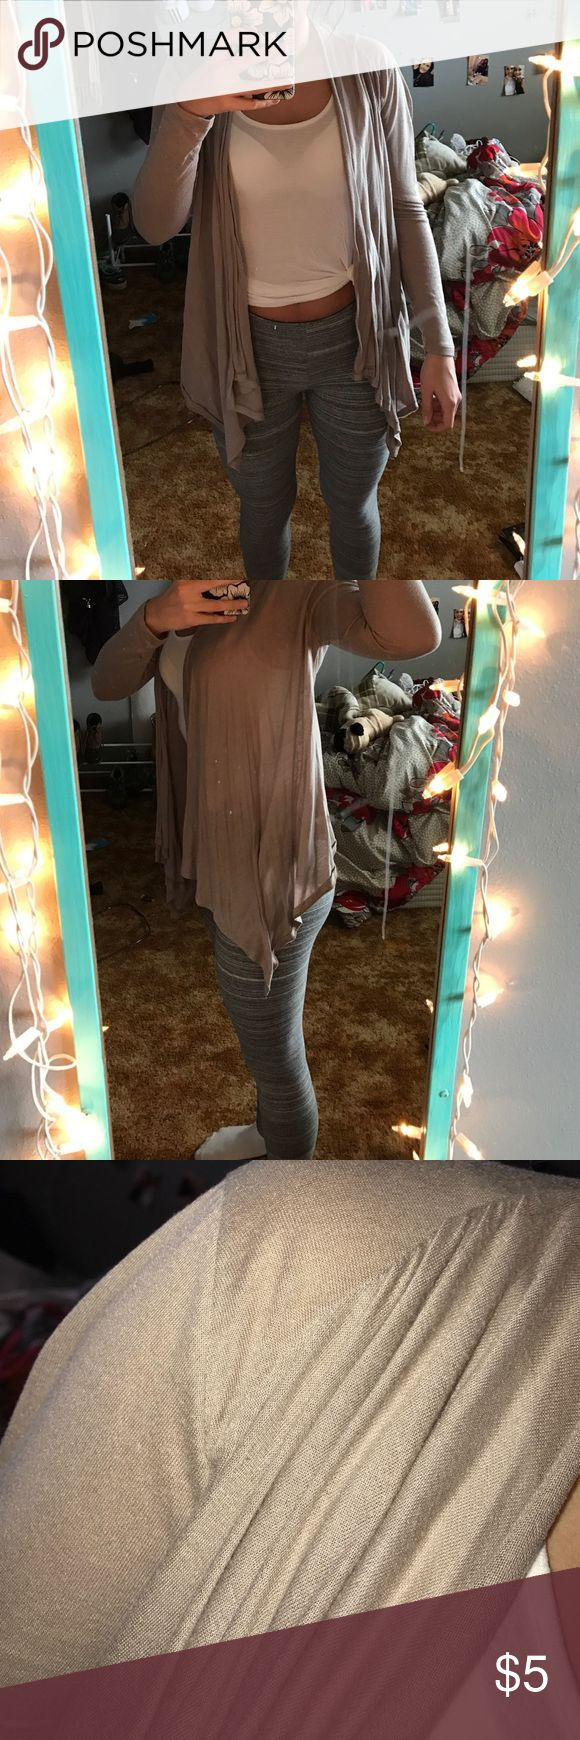 Beige cardigan Beige, open cardigan that's longer in the front Forever 21 Sweaters Cardigans